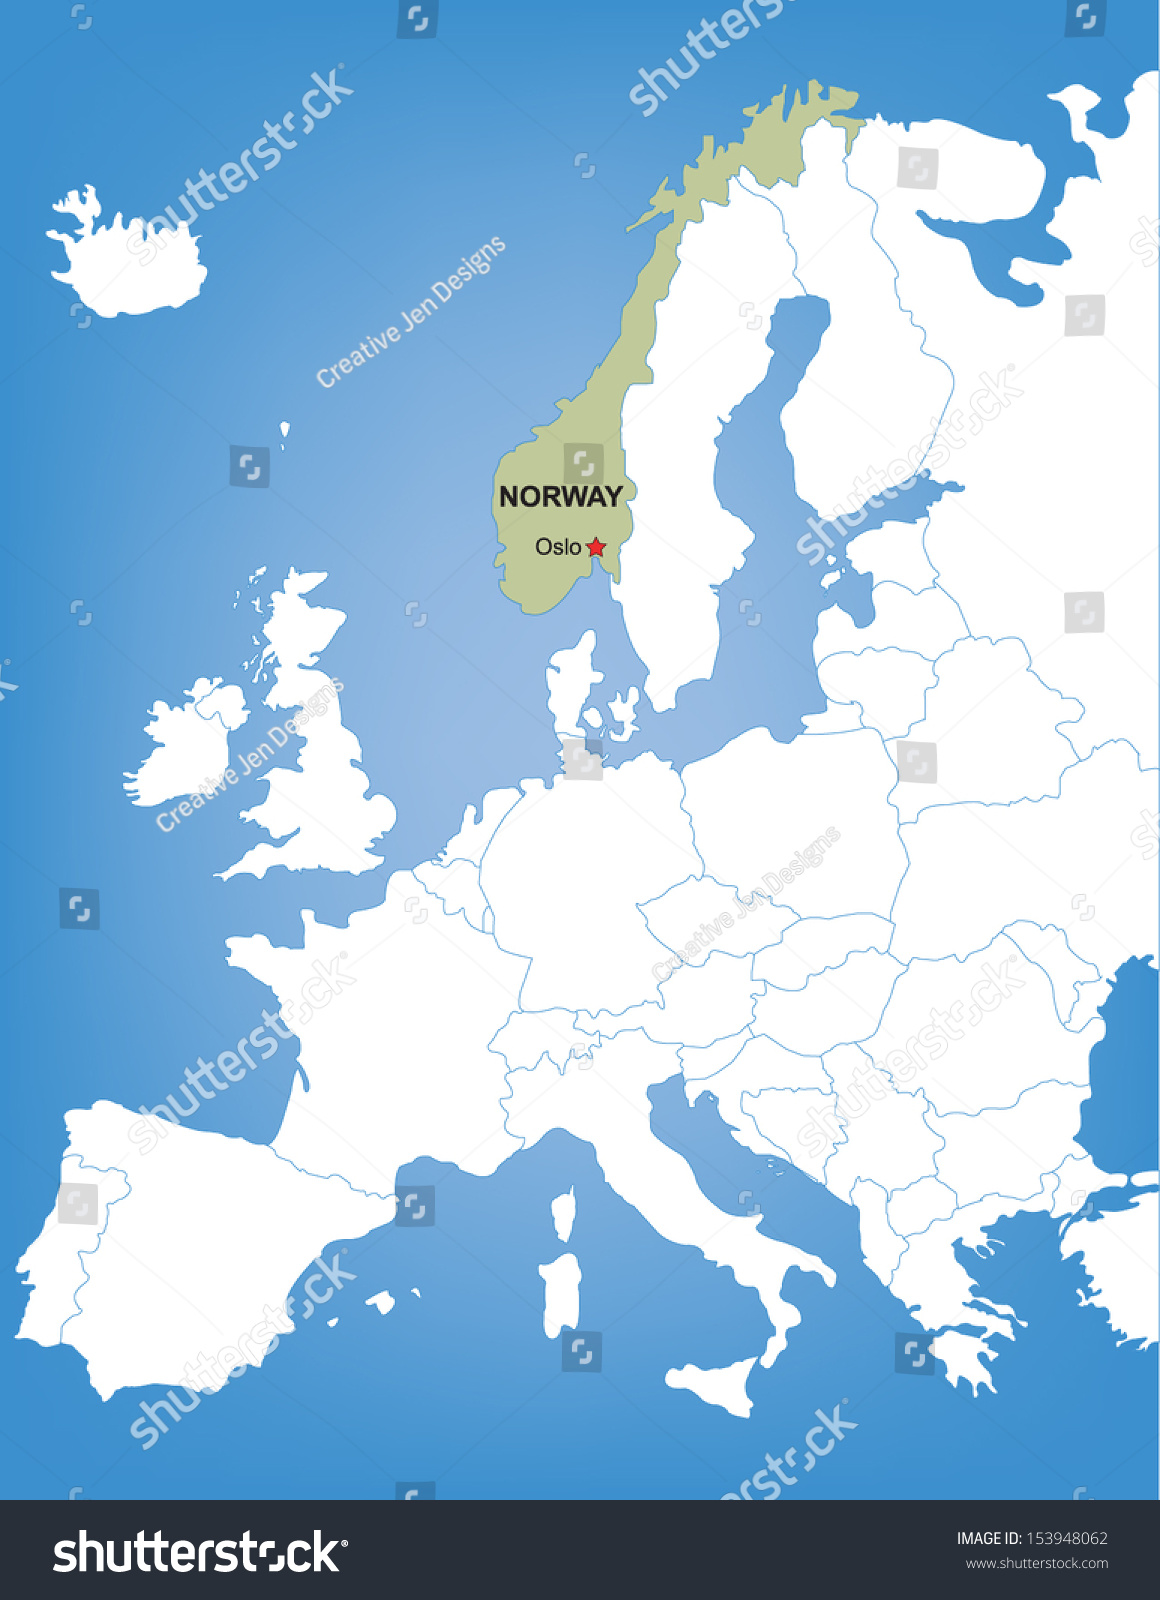 Norway On Map Of Europe.Vector Map Europe Highlighting Country Norway Stock Vector Royalty